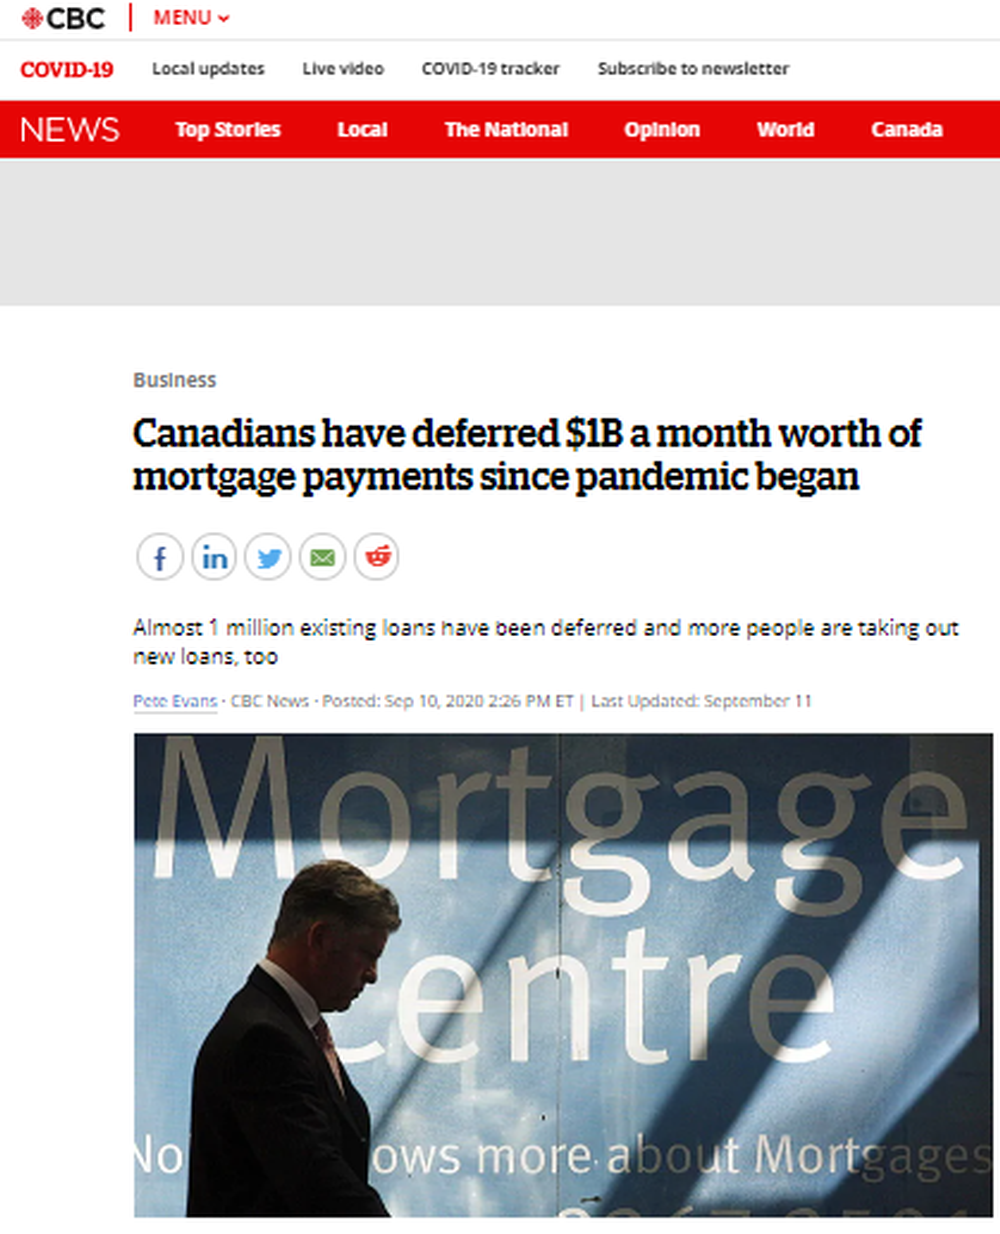 Canadians have deferred $1B a month worth of mortgage payments since pandemic began